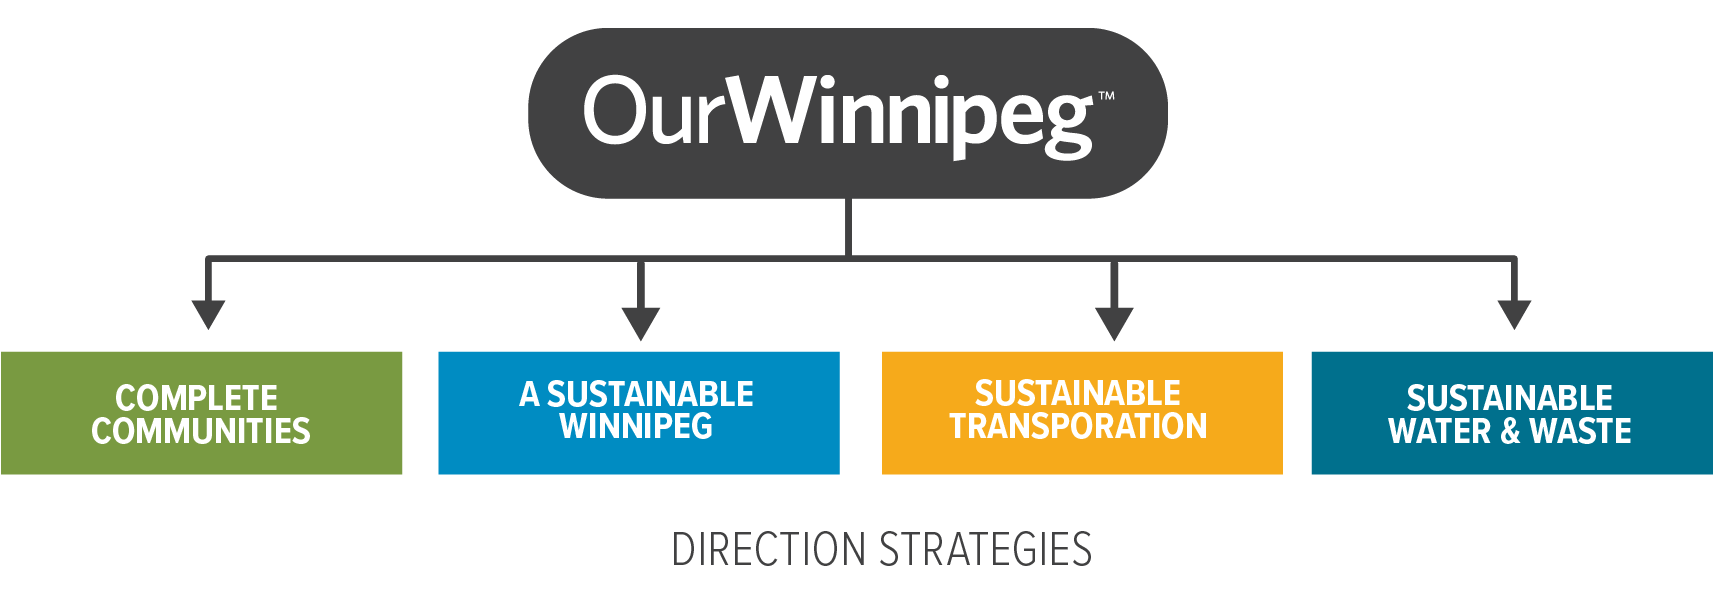 OurWinnipeg, Complete Communities, Sustainable Winnipeg, Sustainable Transportantion, Sustainable Water & Waste. Direction Strategies